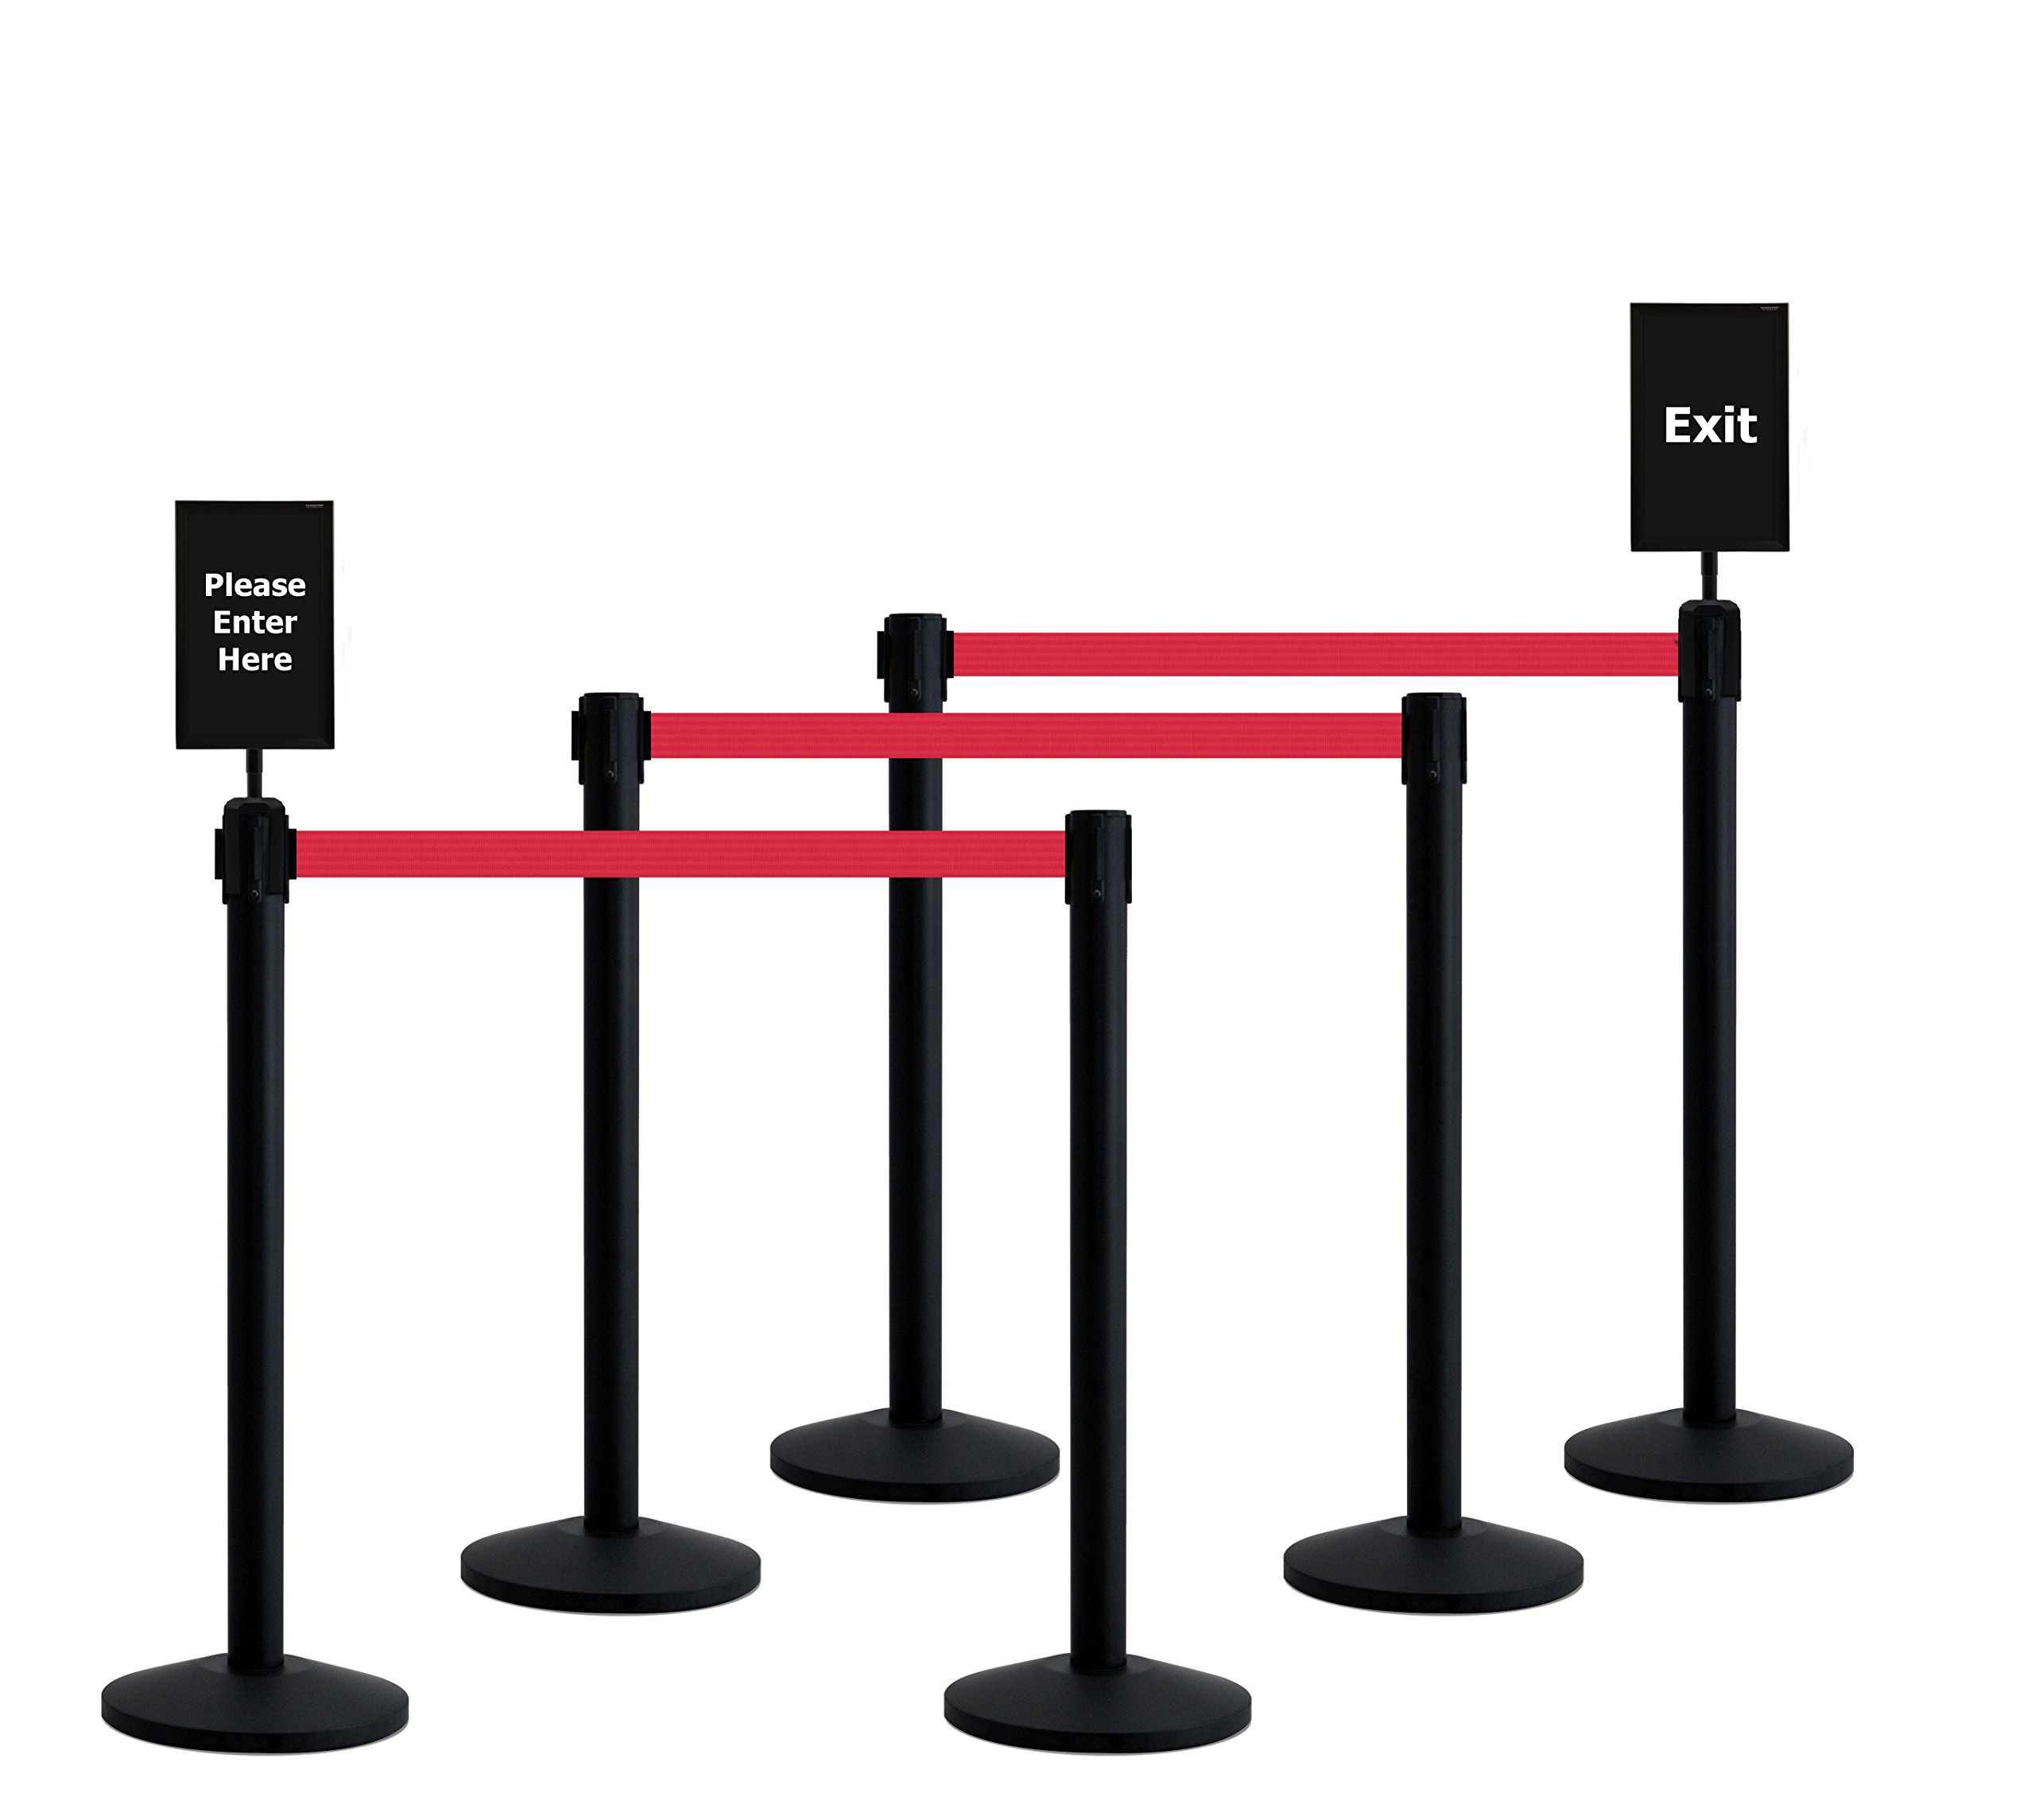 Queueway Crowd Control Retractable Belt Stanchion 6-Pack Kit with Signs USA Made (Red Webbing) by Queue Way